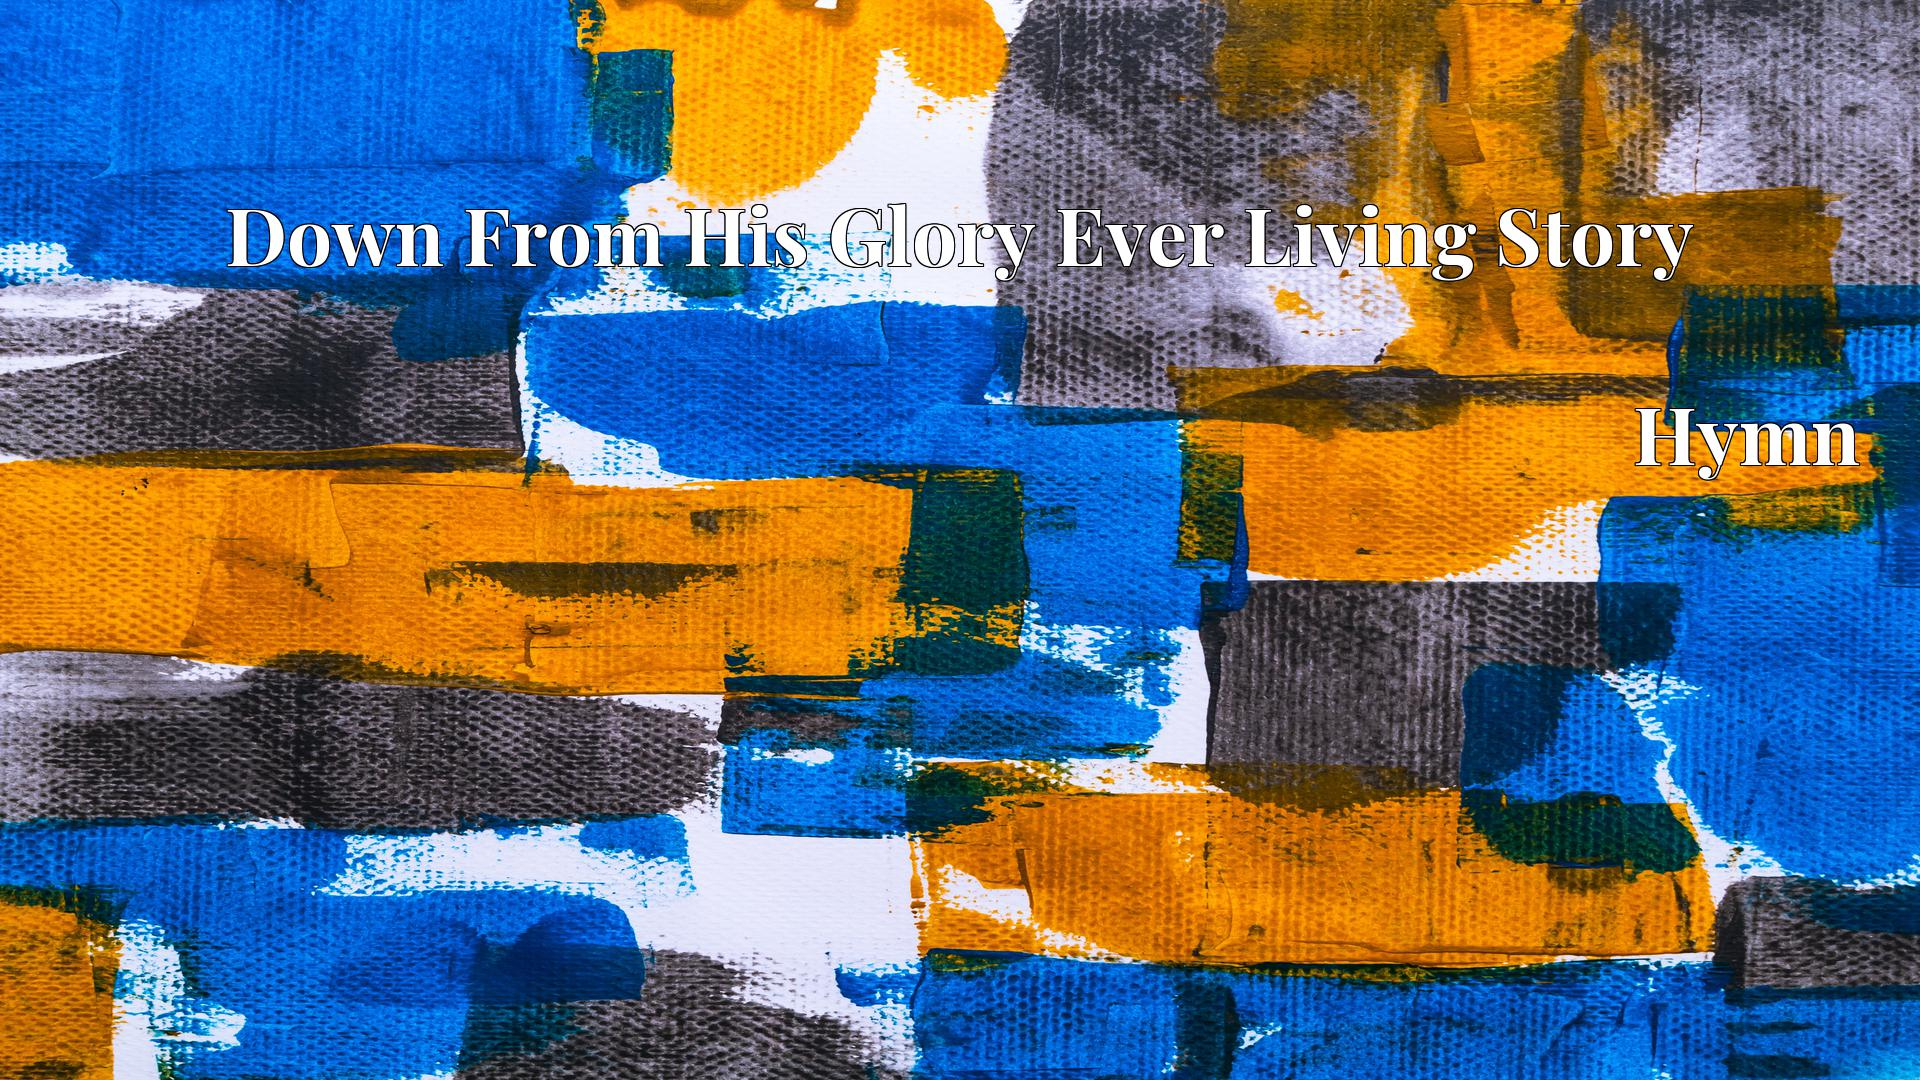 Down From His Glory Ever Living Story - Hymn